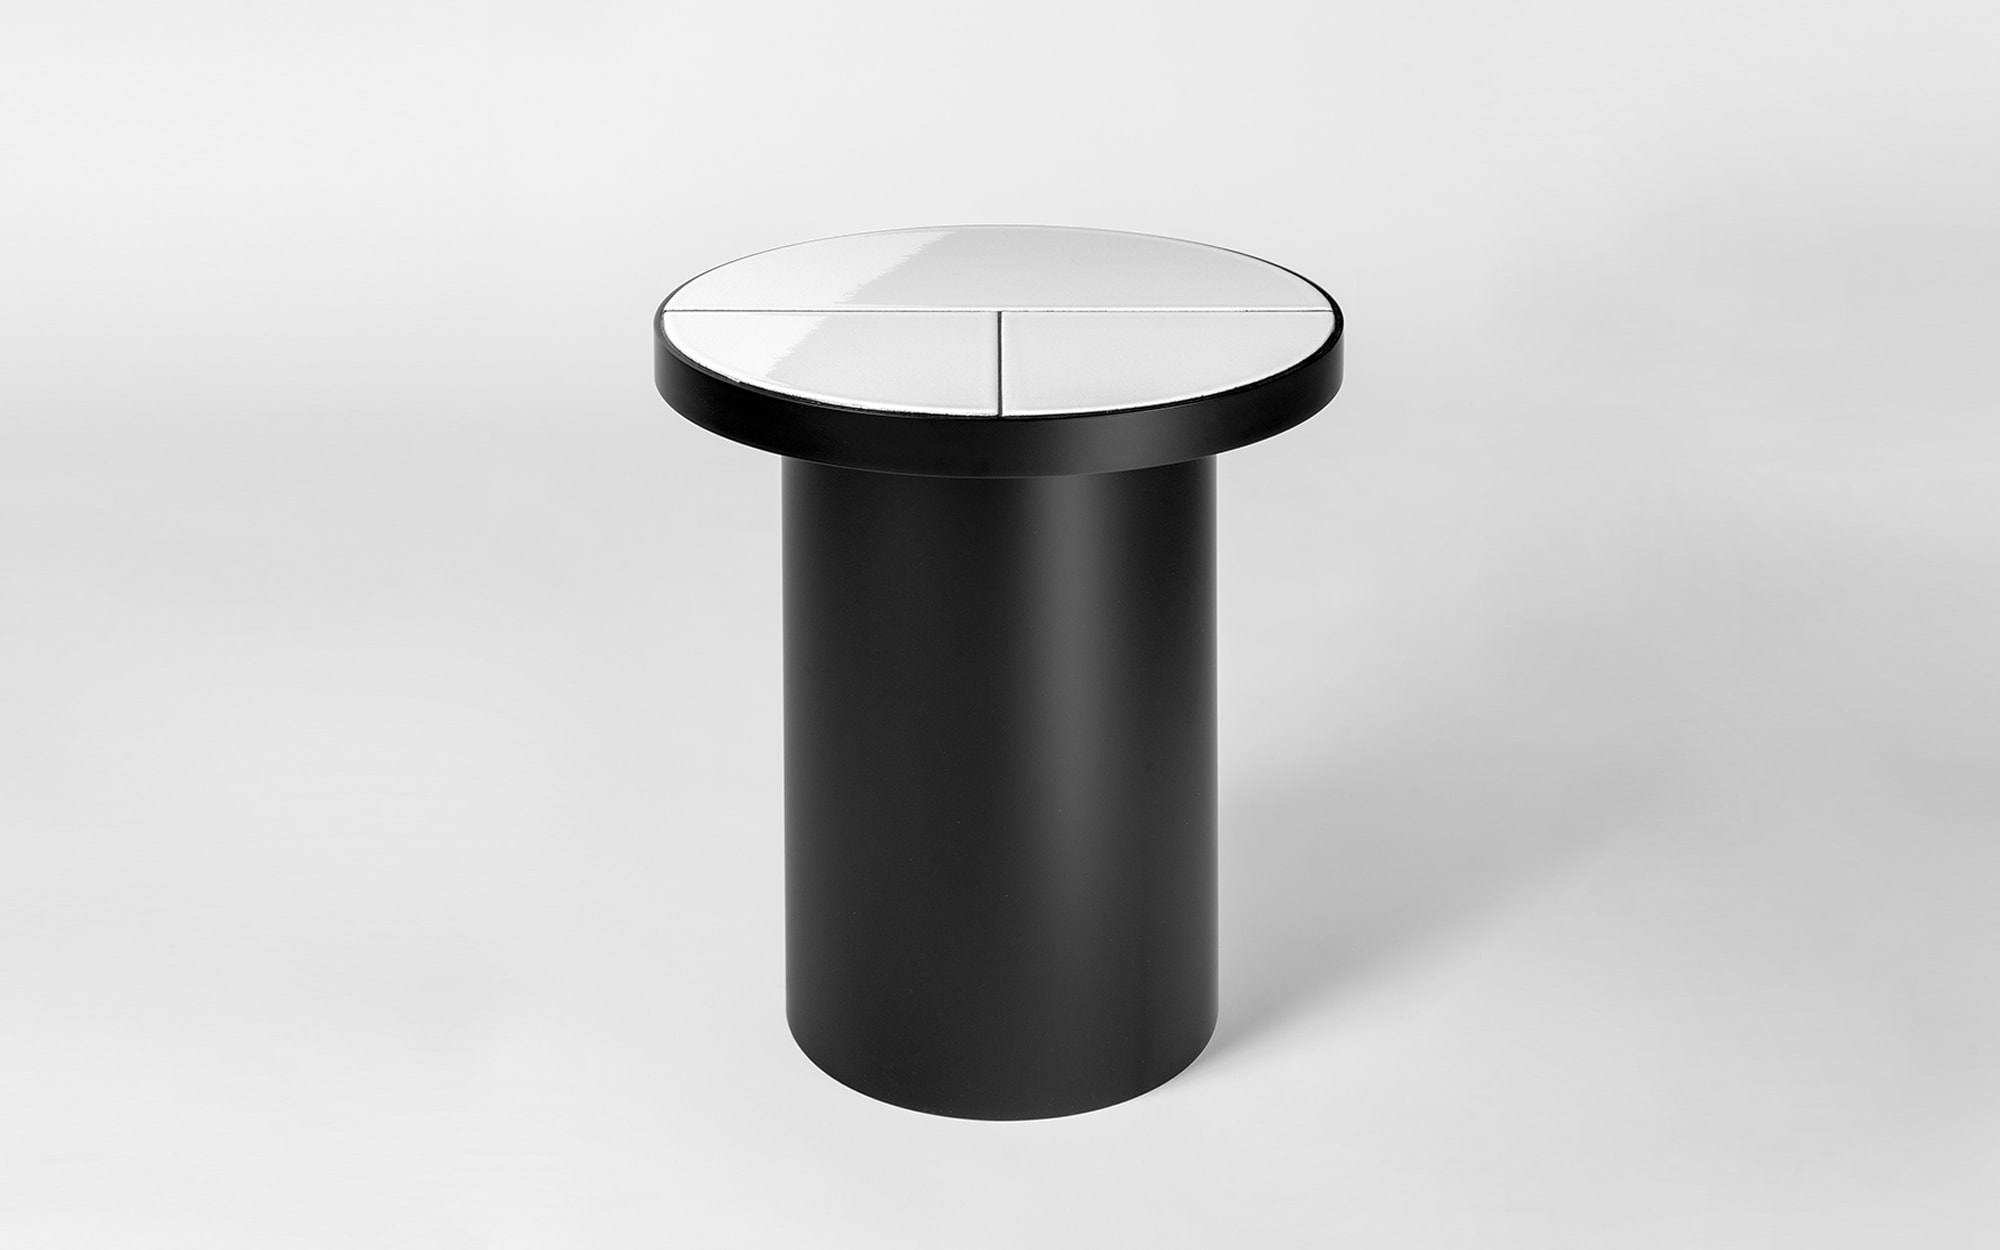 Pierre Charpin Fraction - monochromatic Side Table